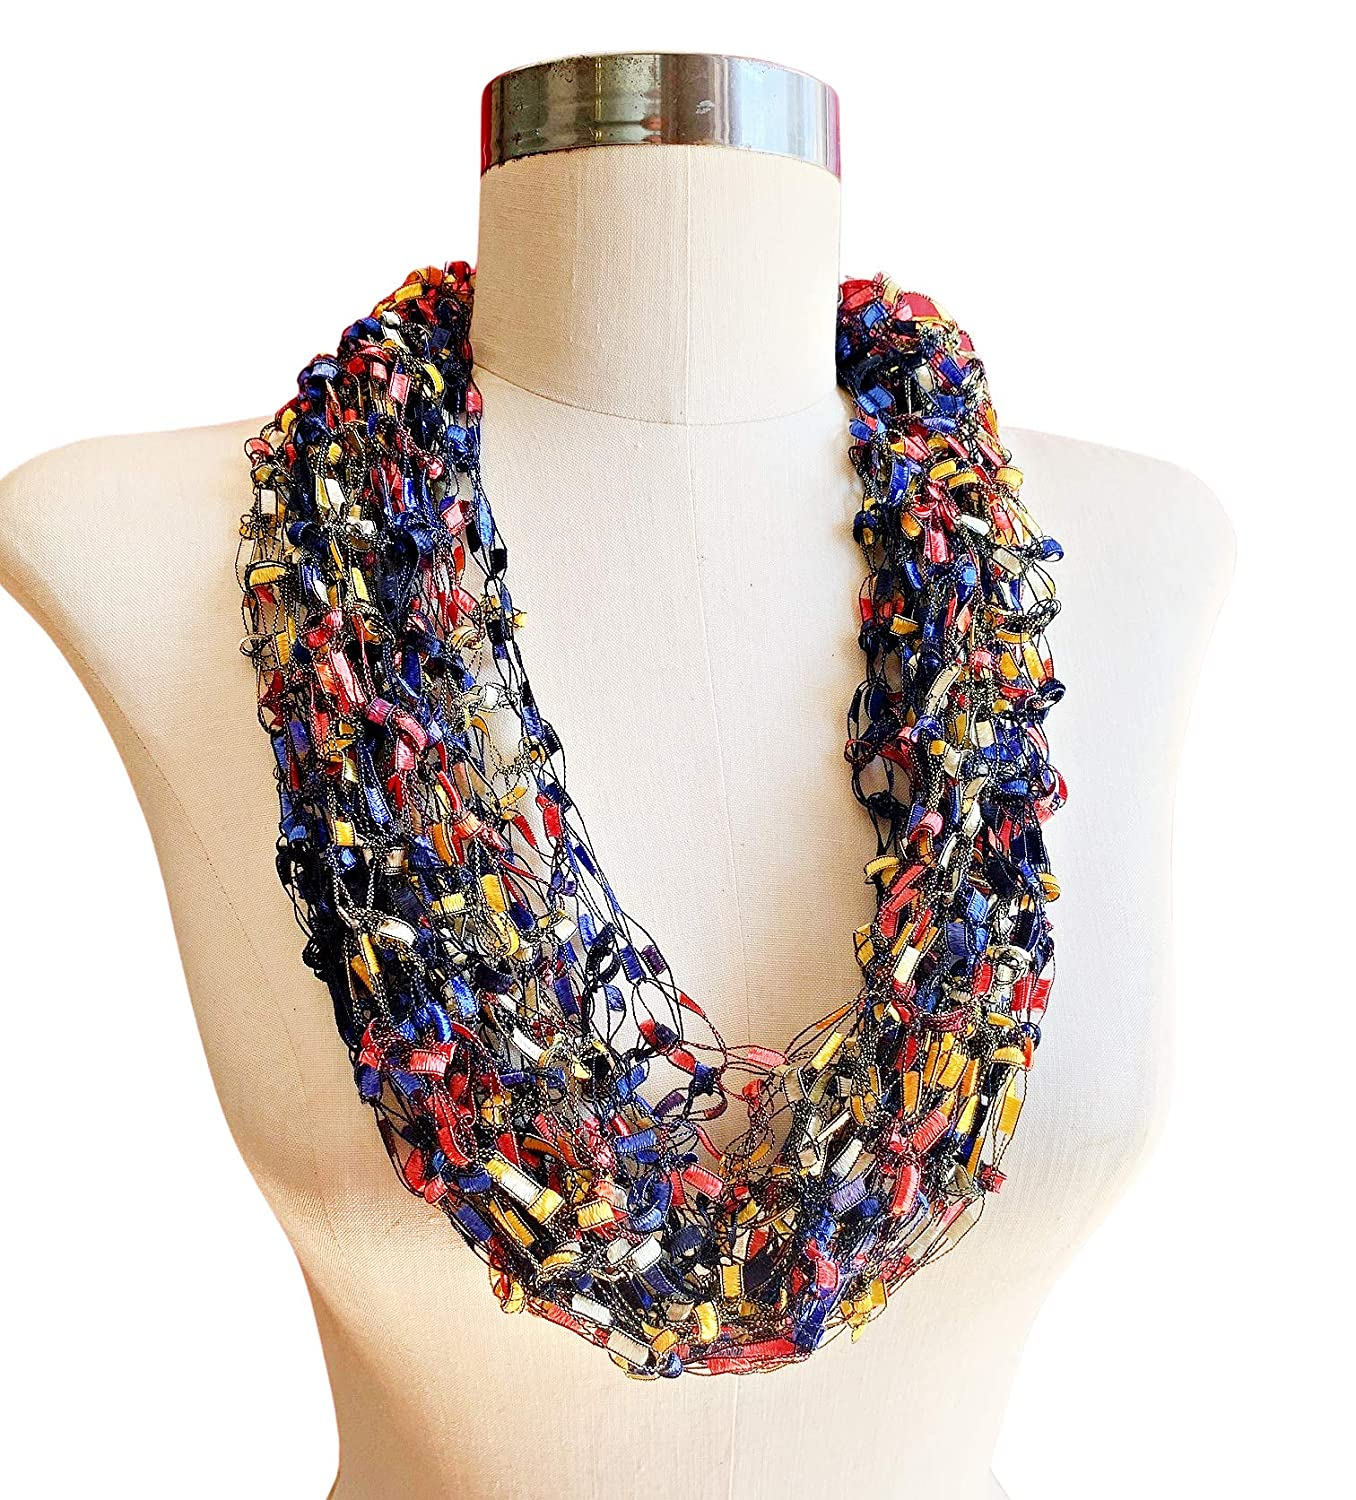 Primary Colors Light Infinity Sca Fees free!! Outlet sale feature Necklace Scarf